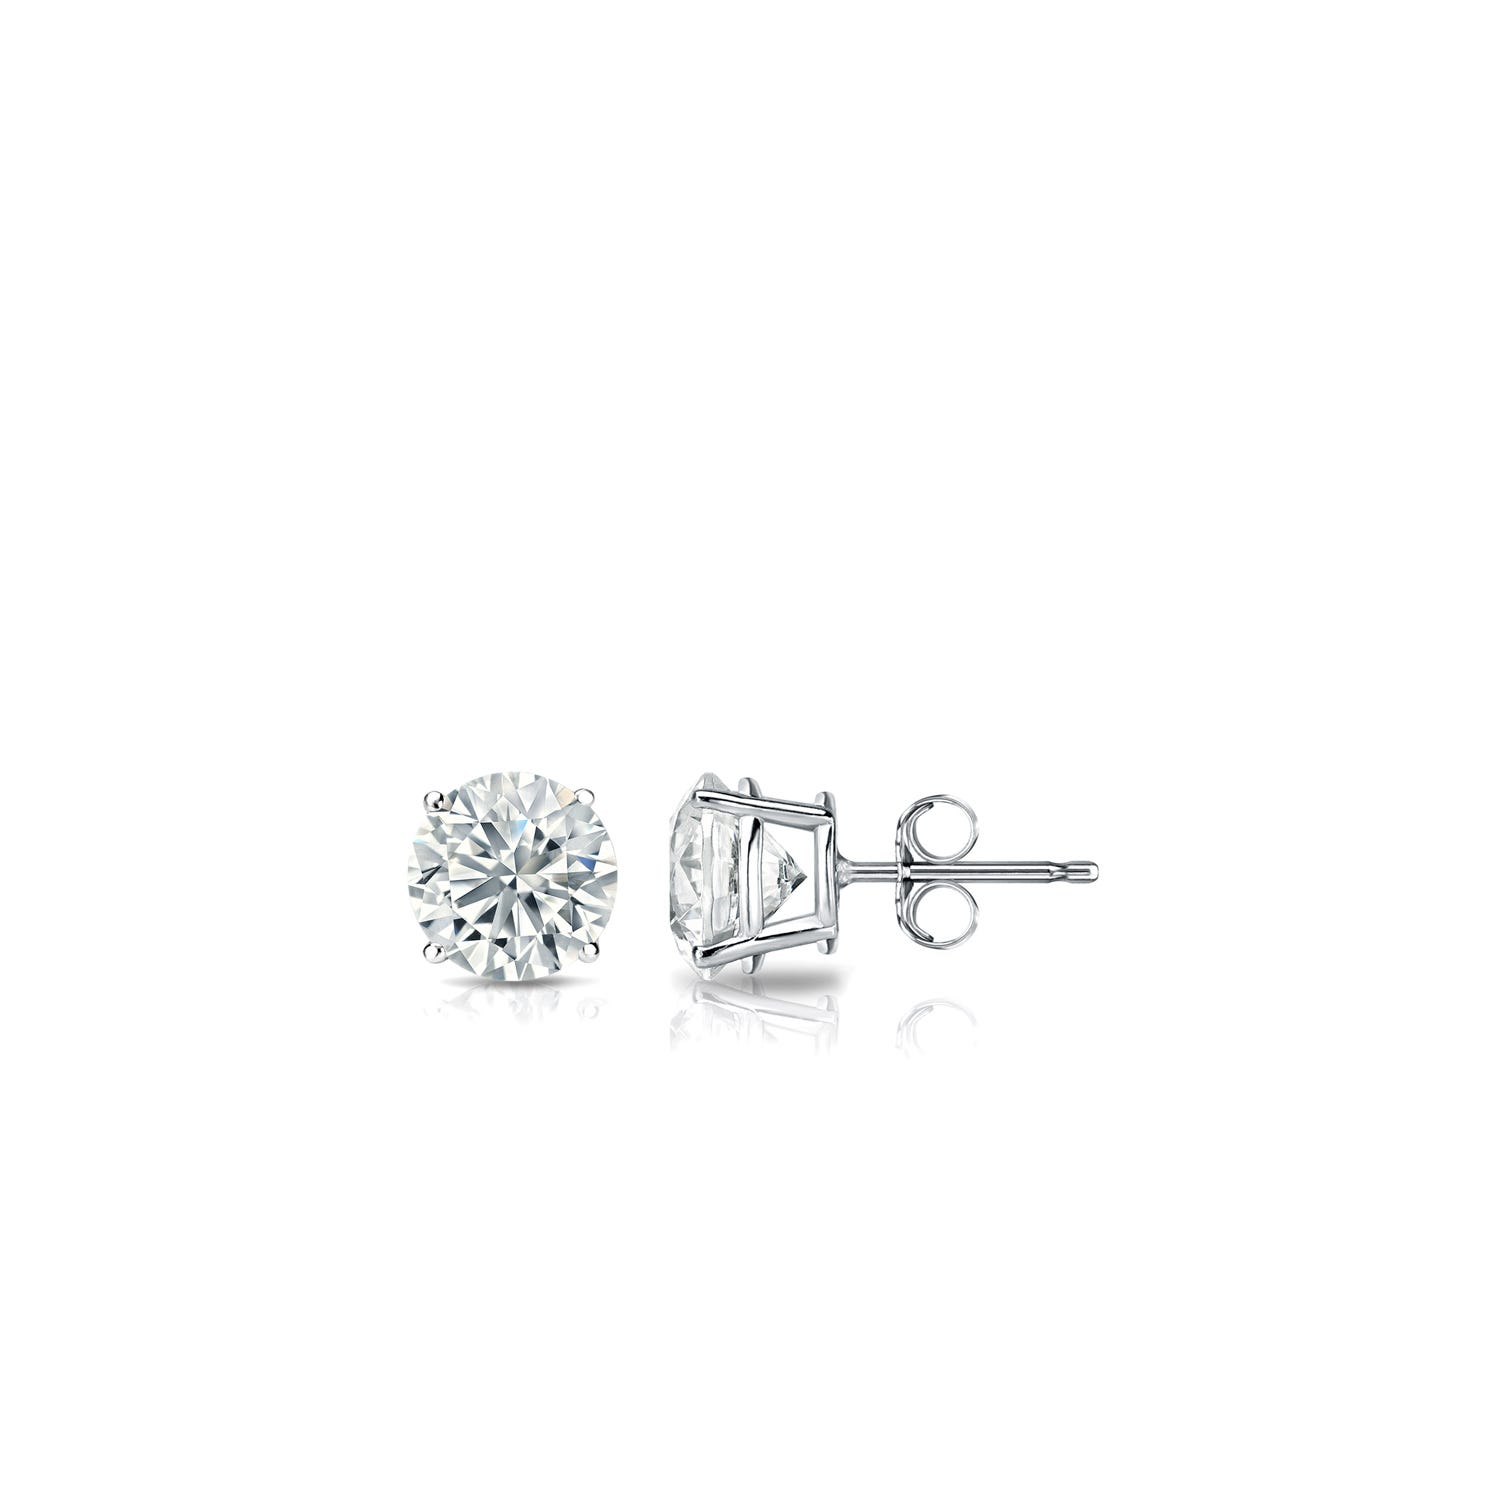 Diamond 1/10ctw. Round Solitaire Stud Earrings (I-J, SI2) 14k White Gold